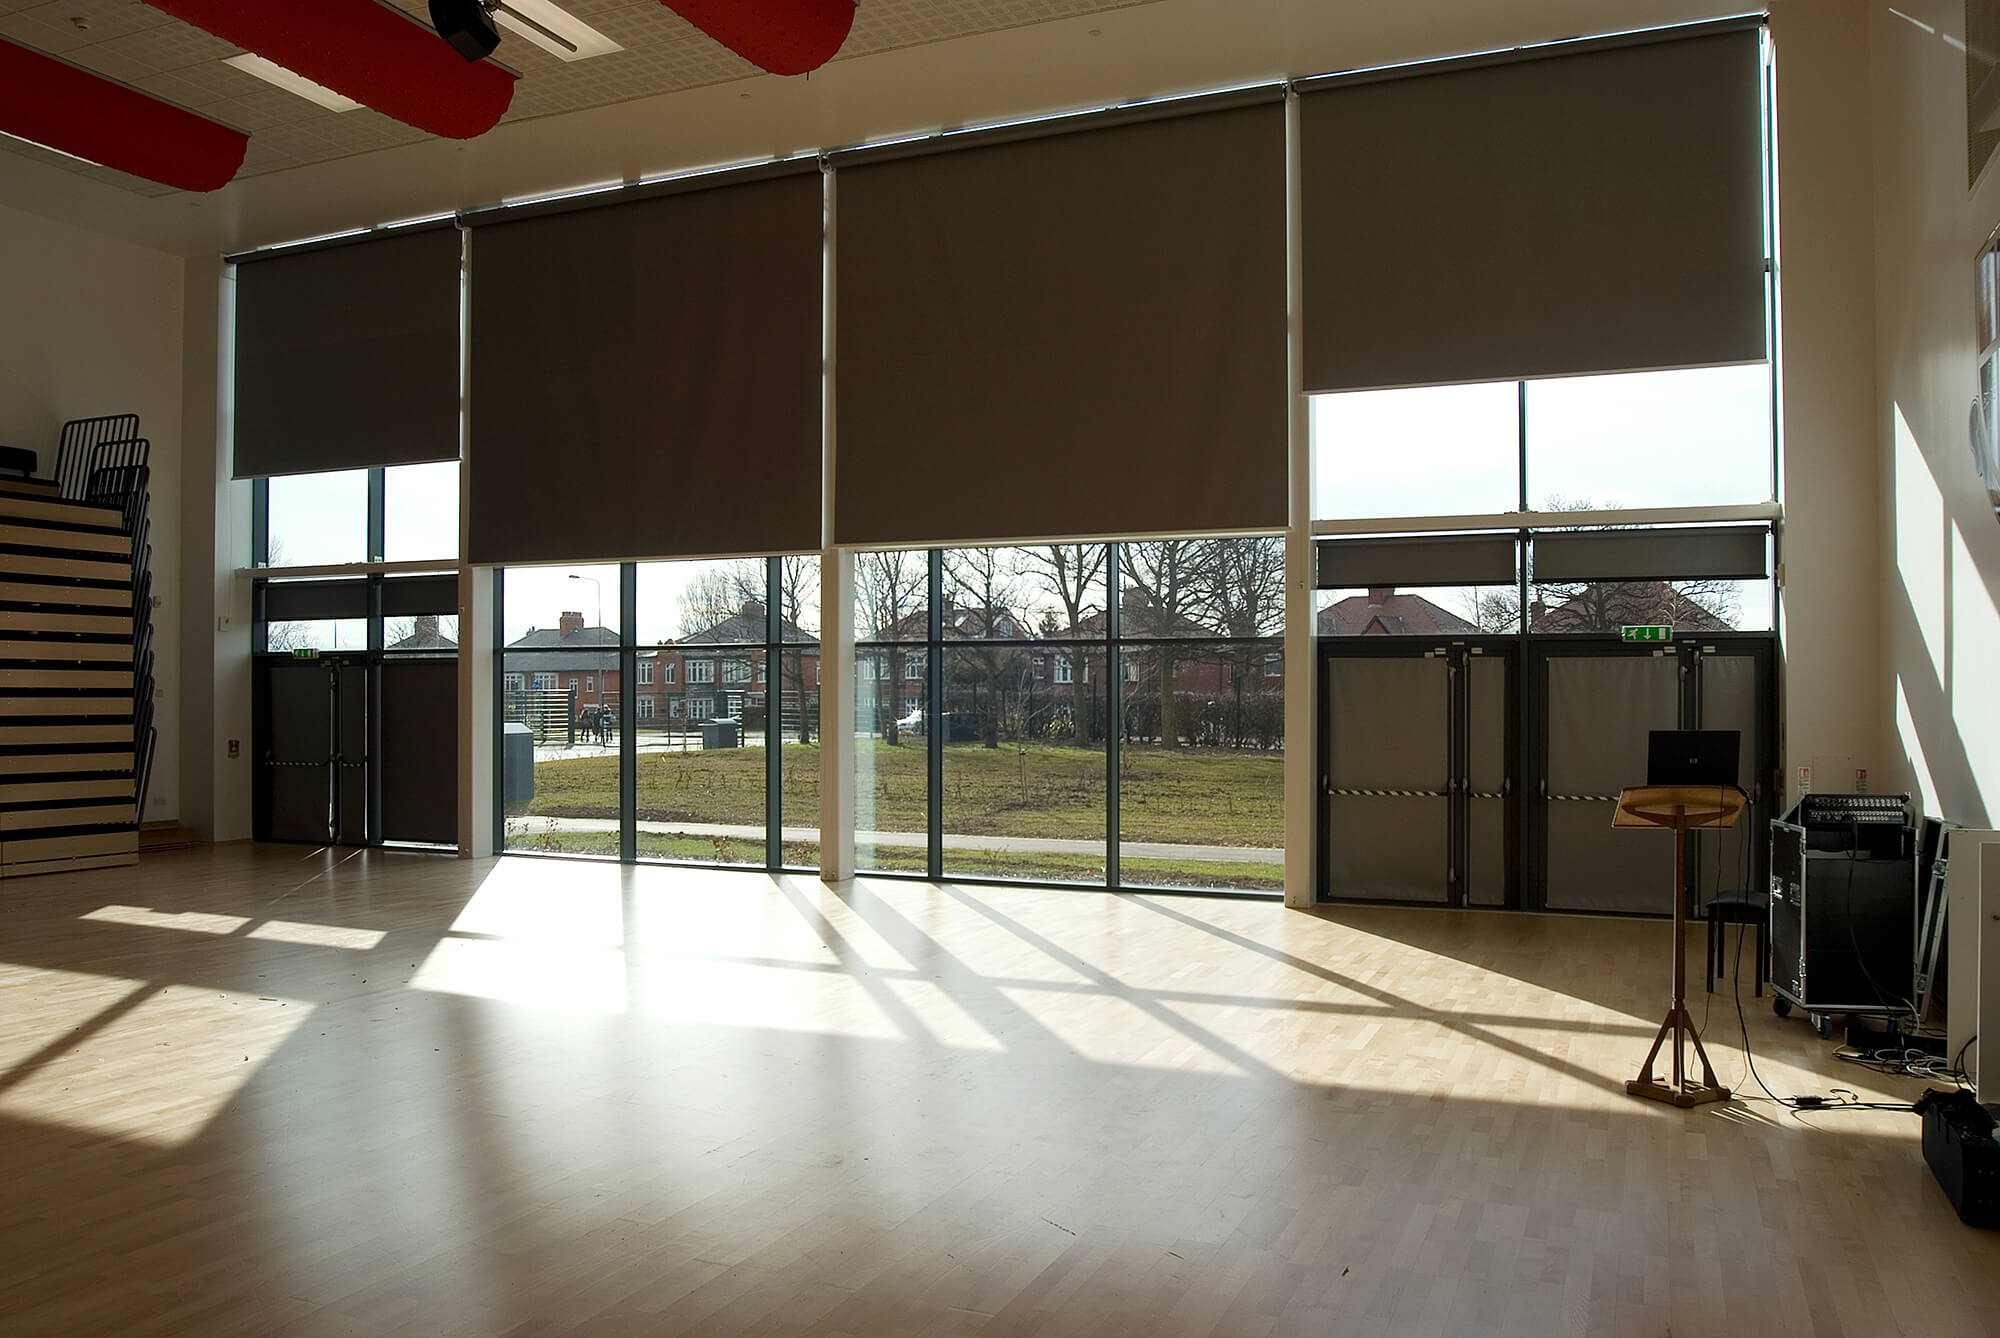 Blinds_education_CBS_supplier_2011_05a